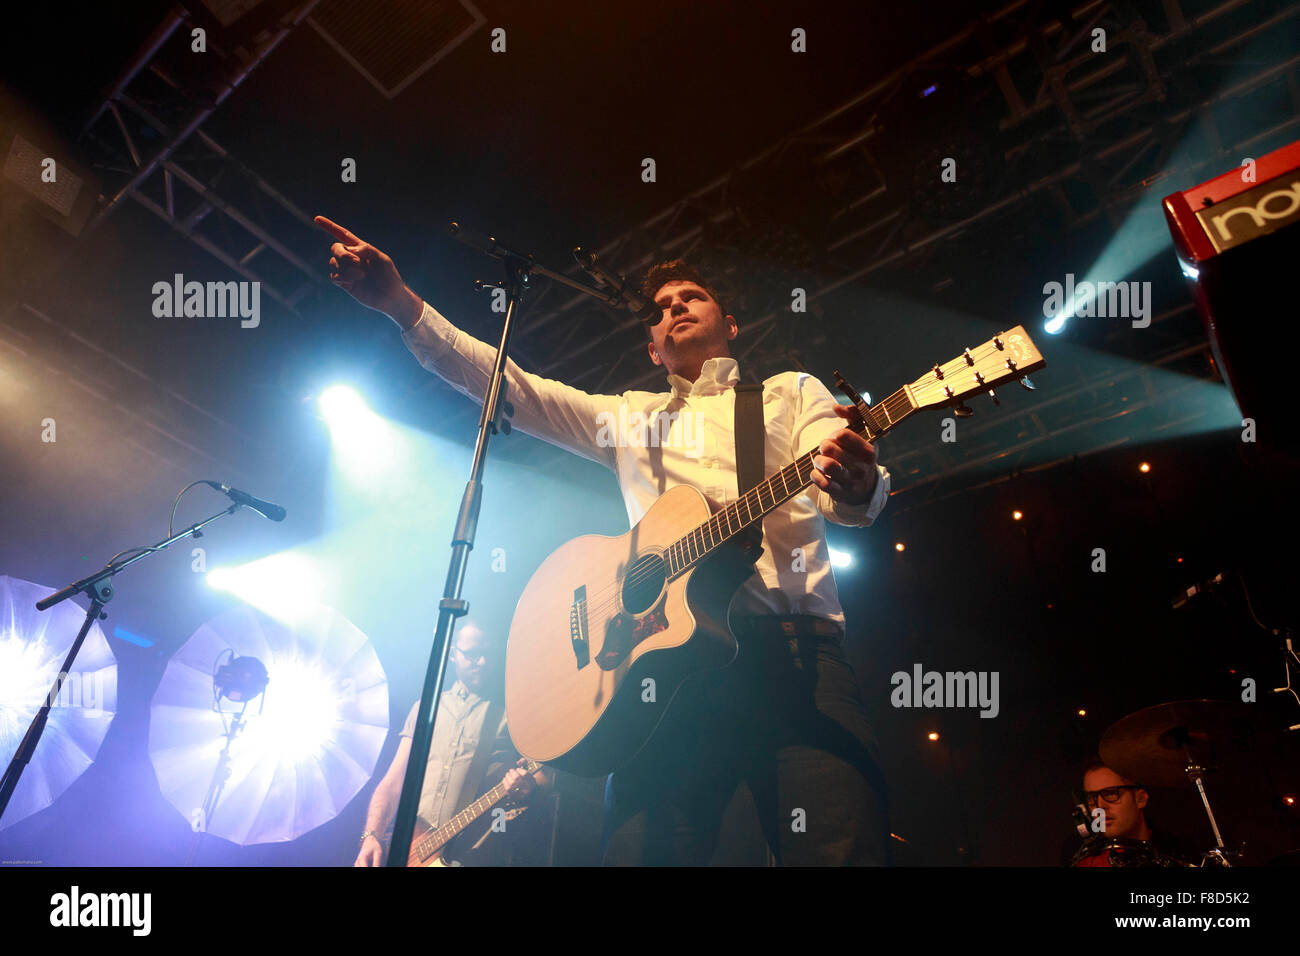 Edinburgh, UK. 8th December. SCOUTING FOR GIRLS performs on stage in The Liquid Rooms Edinburgh. Roy Stride. Pako - Stock Image